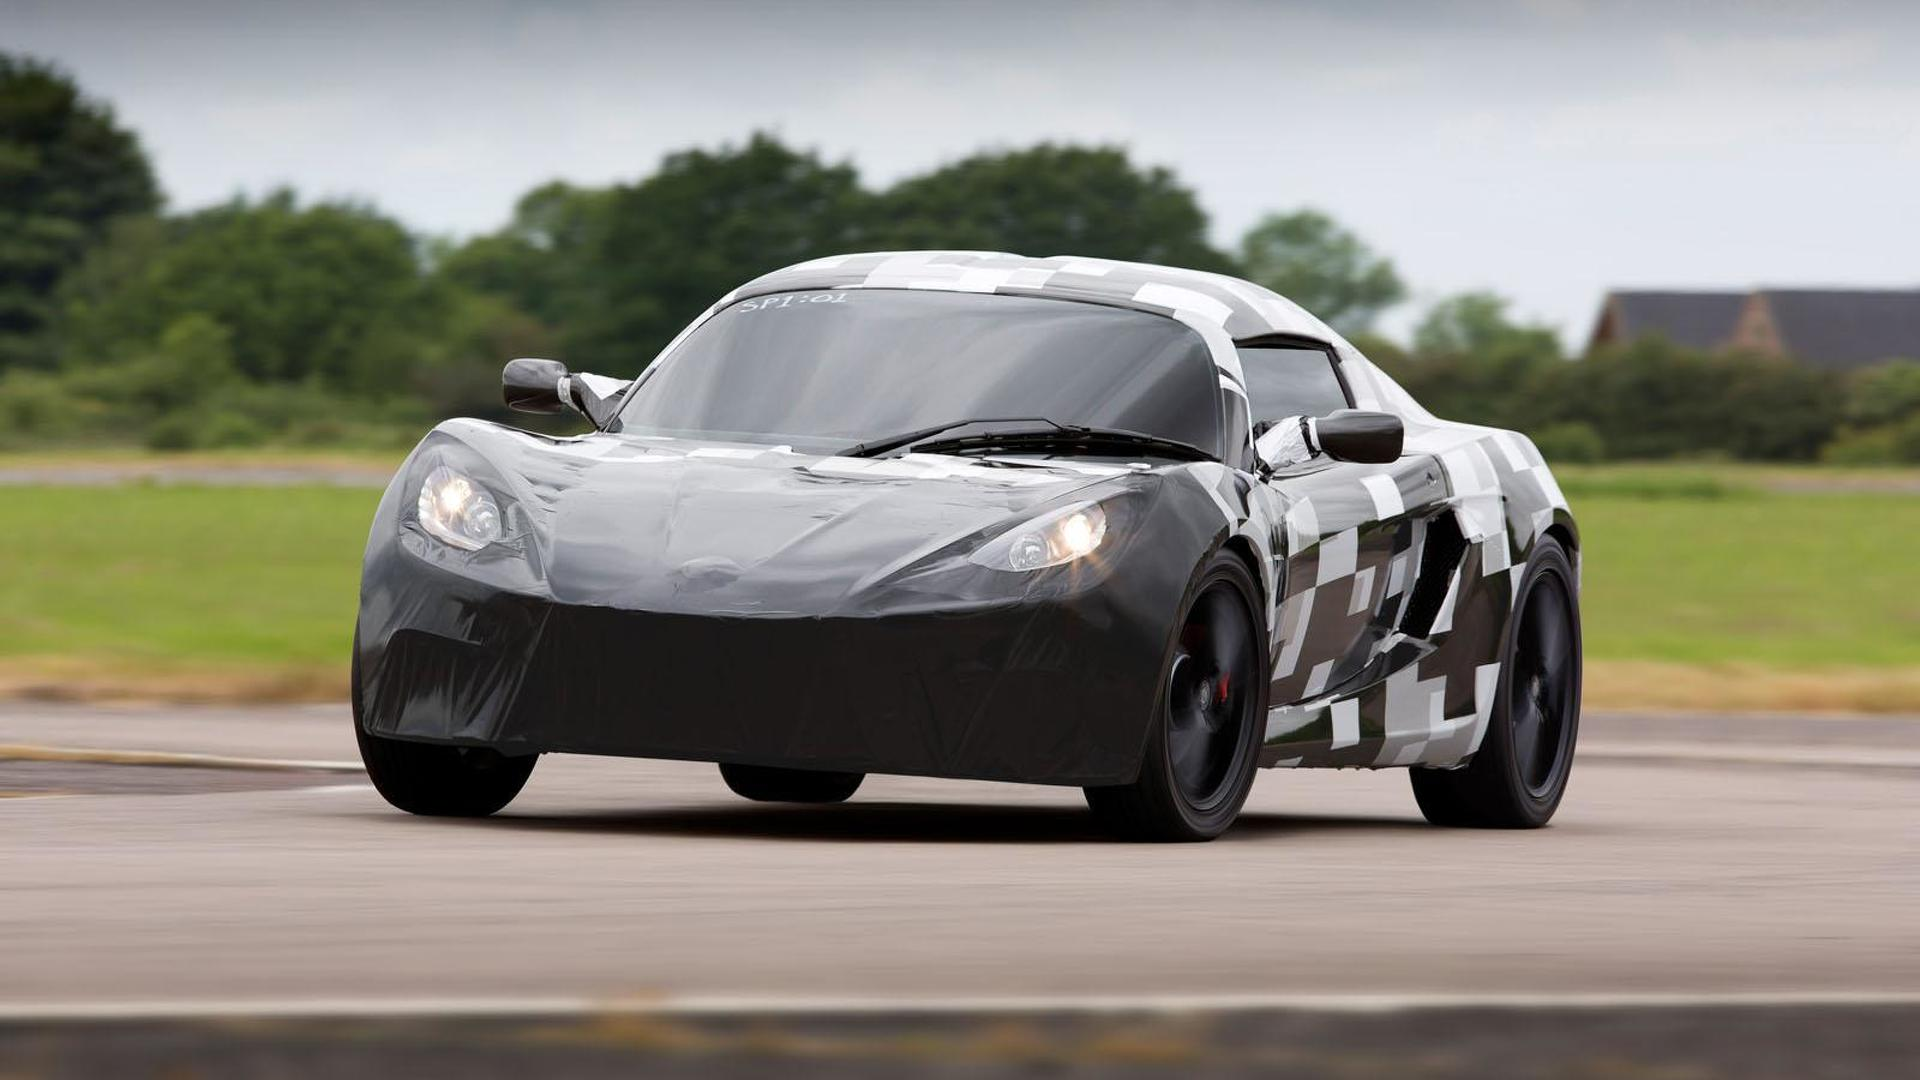 Detroit Electric SP:01 to be built in the UK, will go on sale later this year